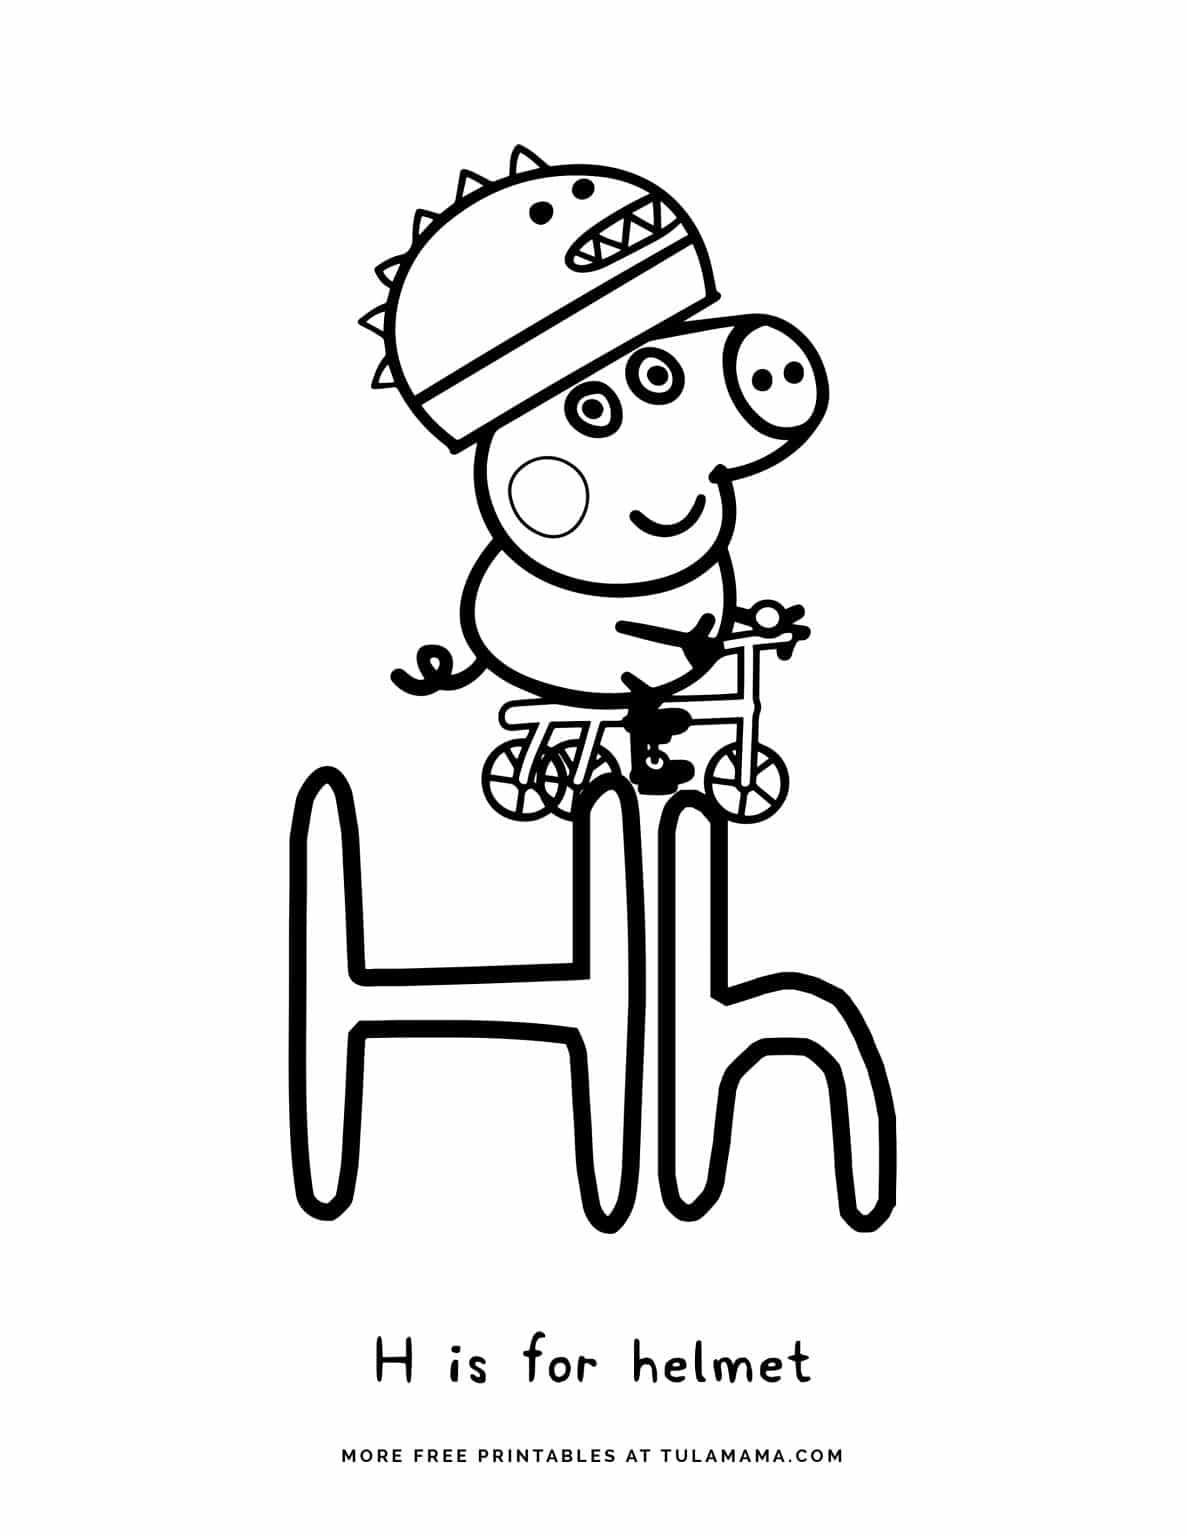 Free Printable Peppa Pig Abc Coloring Pages For Preschoolers Abc Coloring Pages Abc Coloring Alphabet Coloring Pages [ 1536 x 1187 Pixel ]